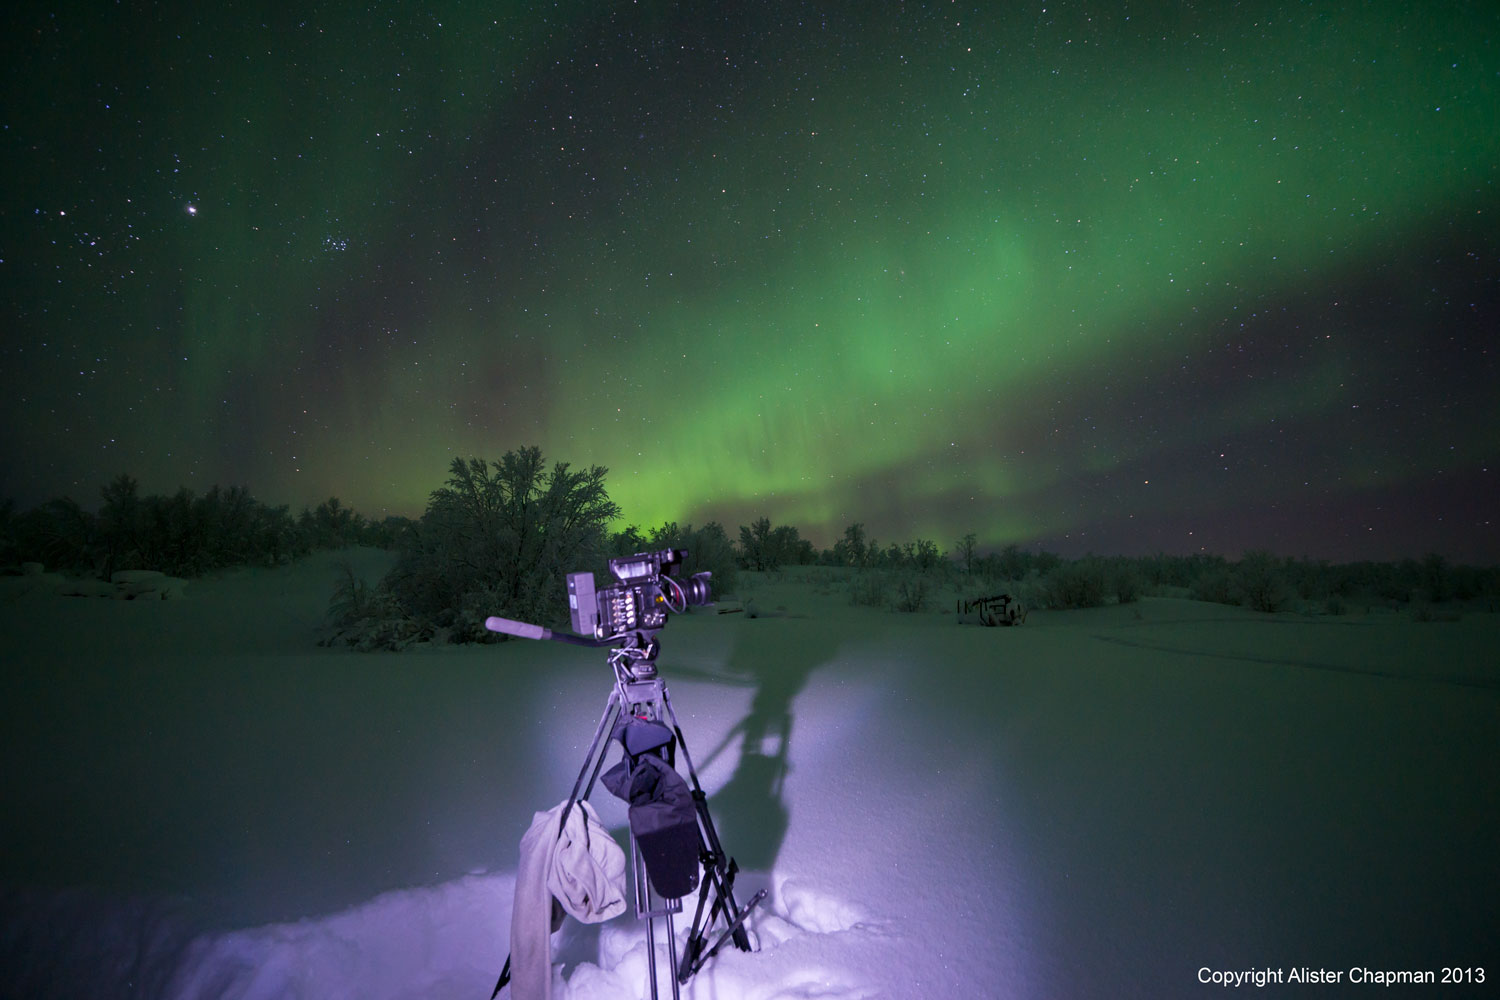 A very cold Sony PMW-F5 camera shooting video of the Aurora.